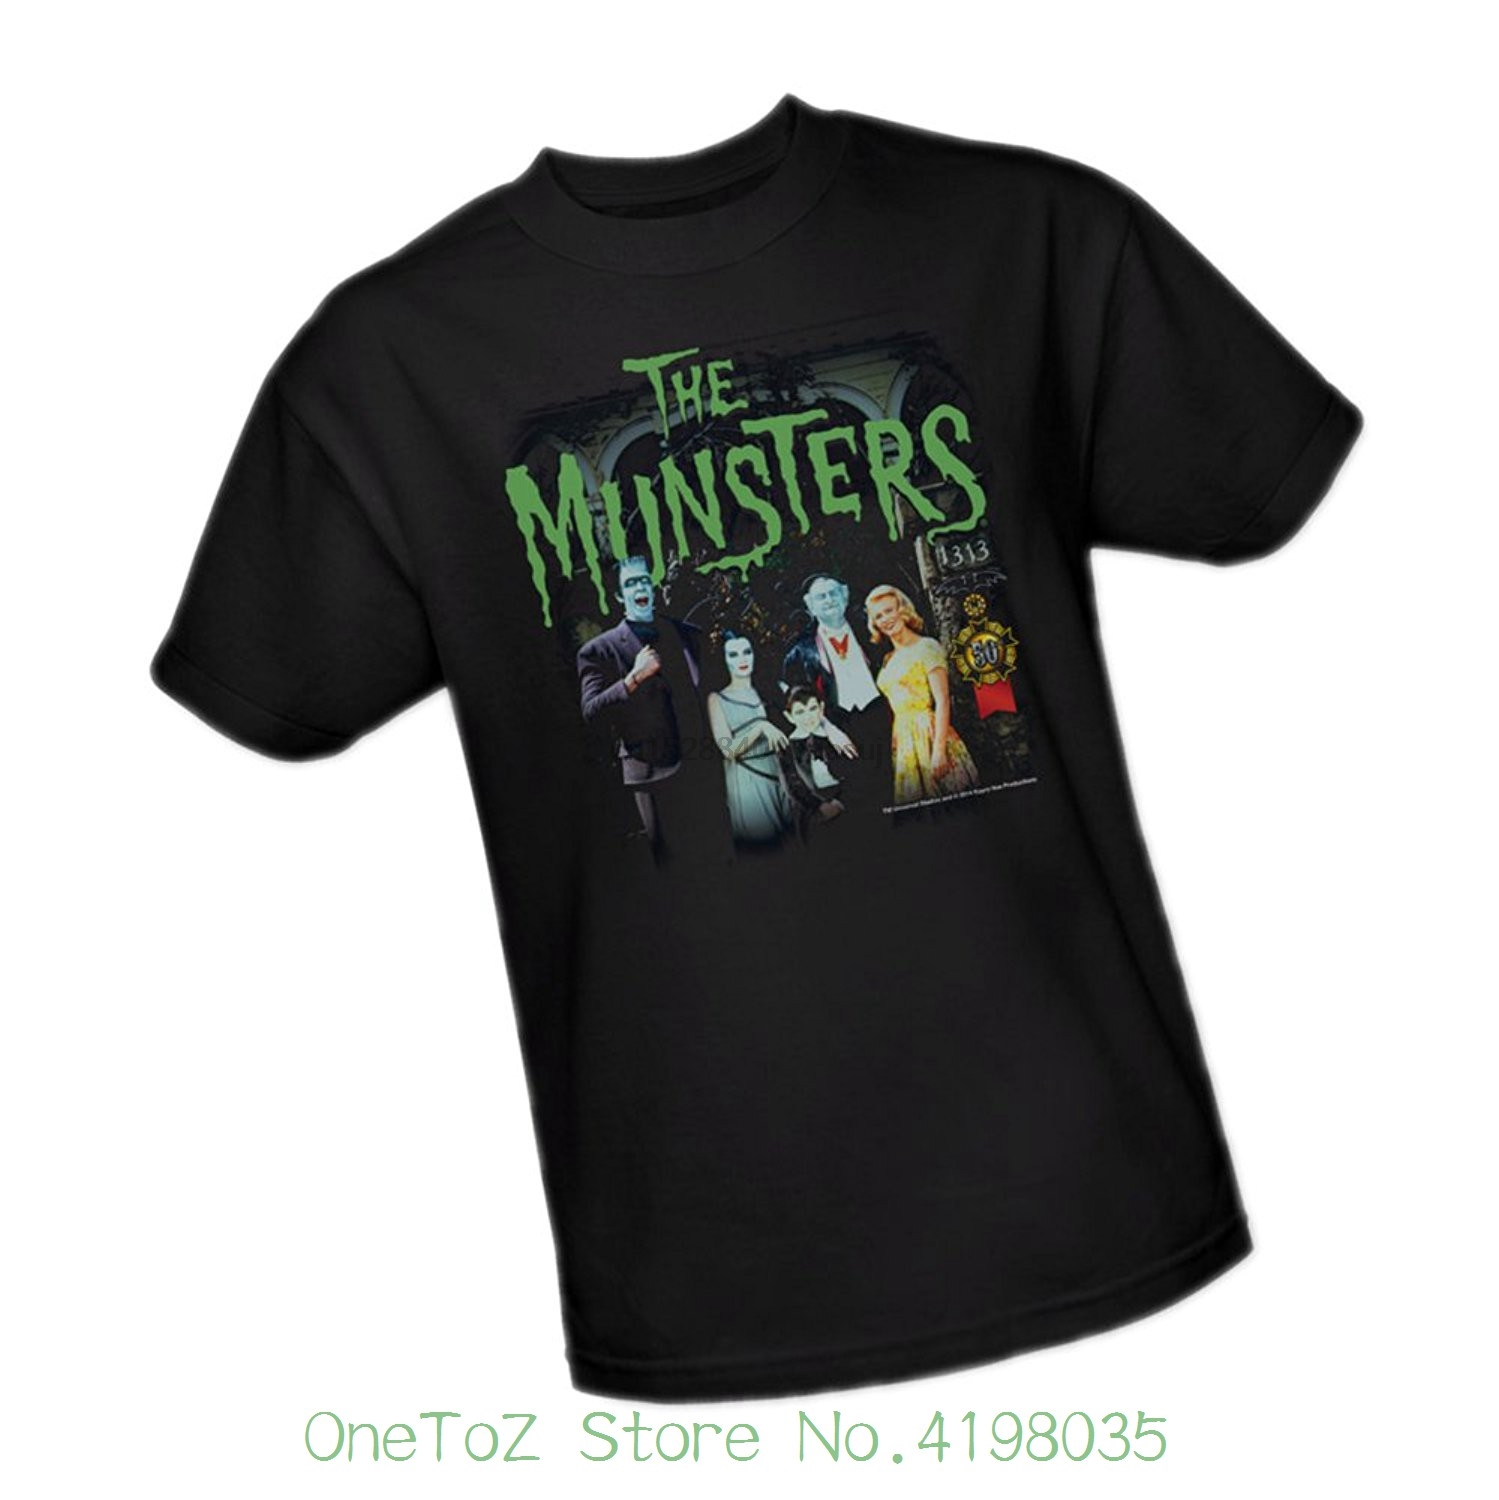 1313 - - 50th Anniversary - - The Munsters Youth T-shirt Men T Shirt Great Quality Funny Man Cotton